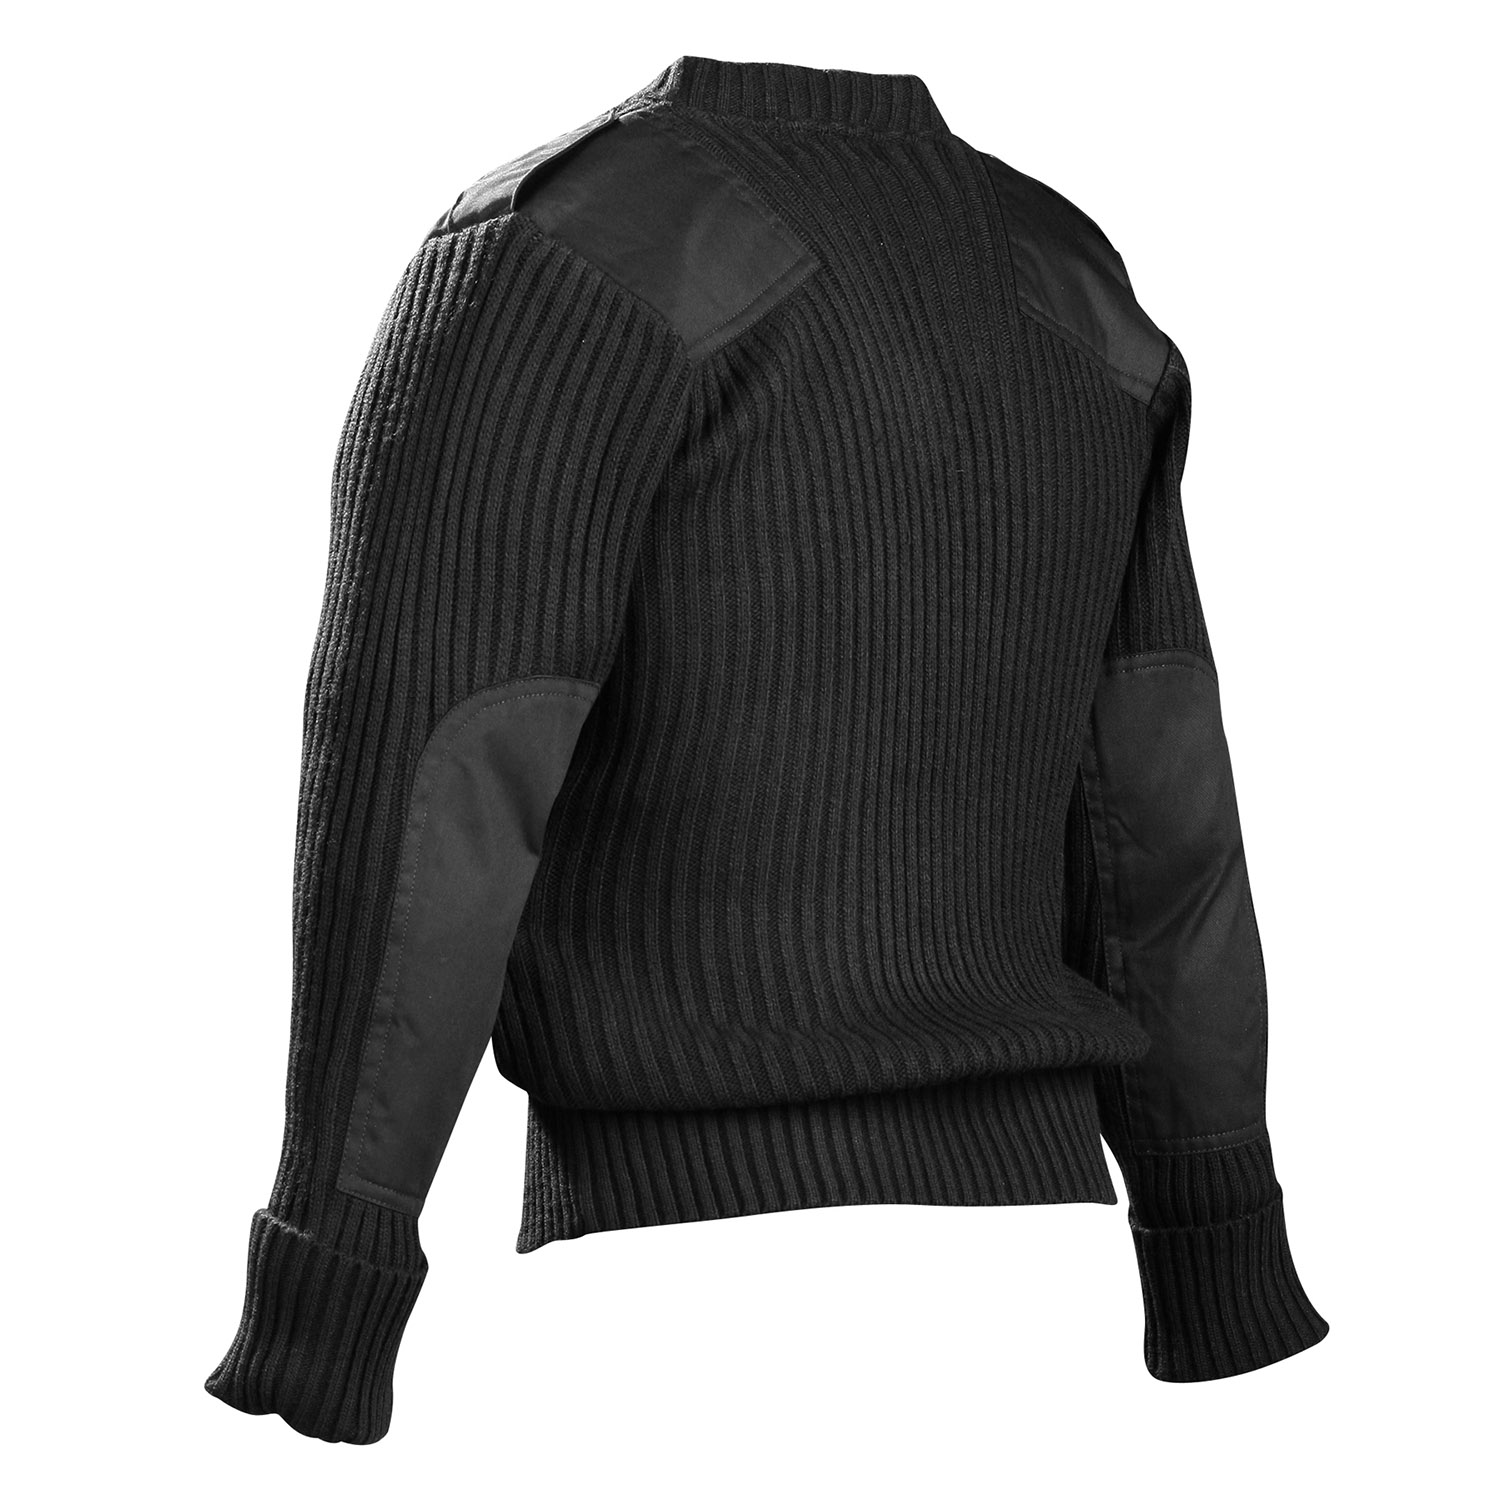 HIGHLANDER V NECK PULLOVER TACTICAL SECURITY MILITARY FORCES ACRYLIC SWEATER